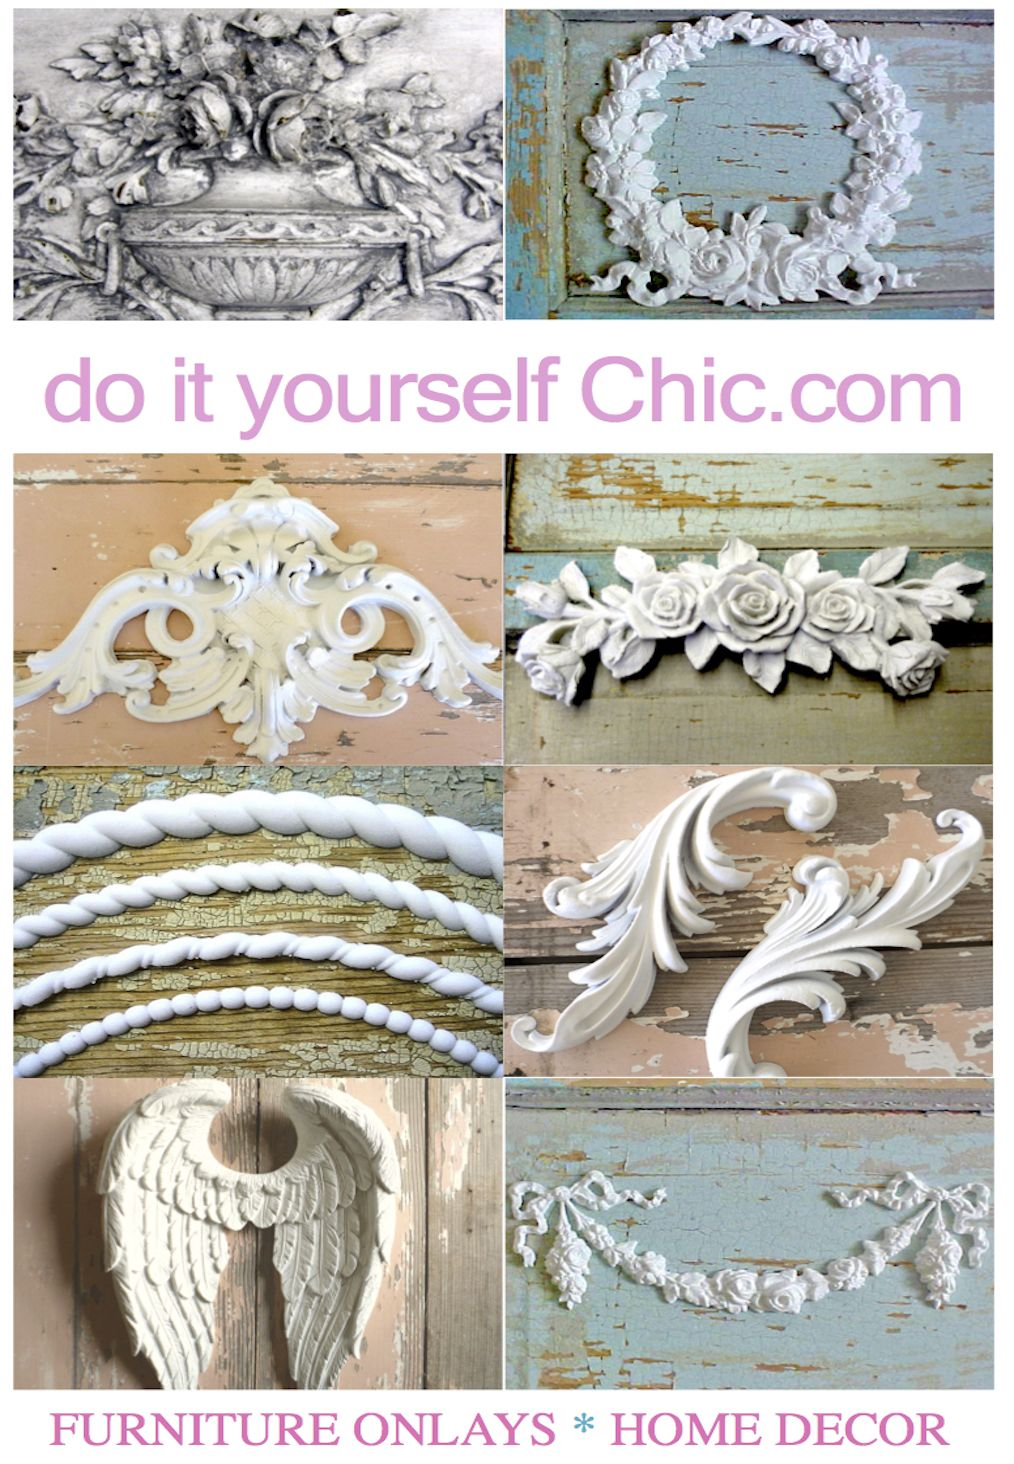 Do It Yourself Furniture Ideas: Our New 2016 Ad! Over 500 Applique Designs